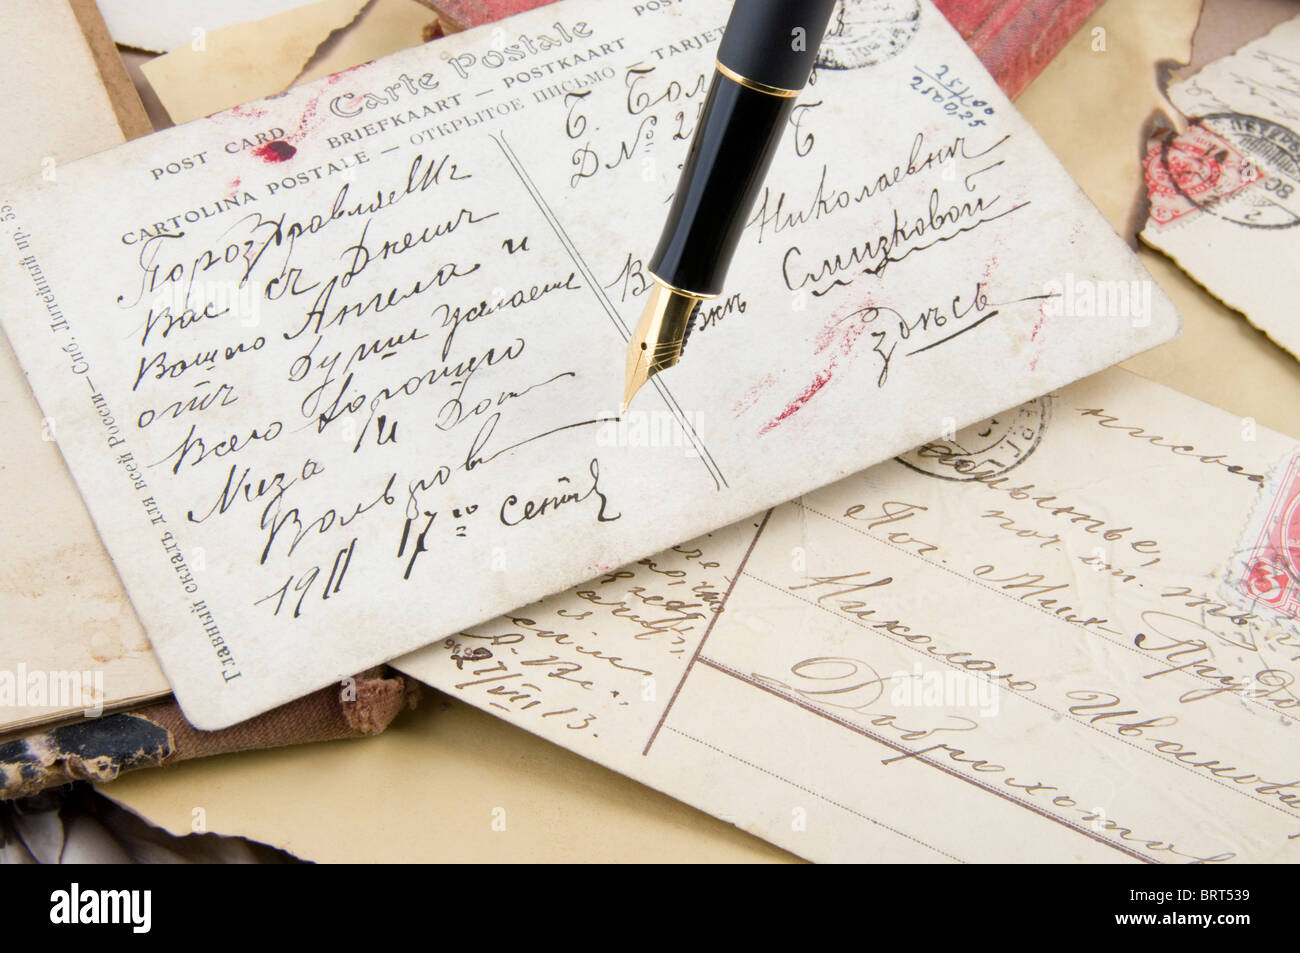 Retro postcards and gold pen - Stock Image